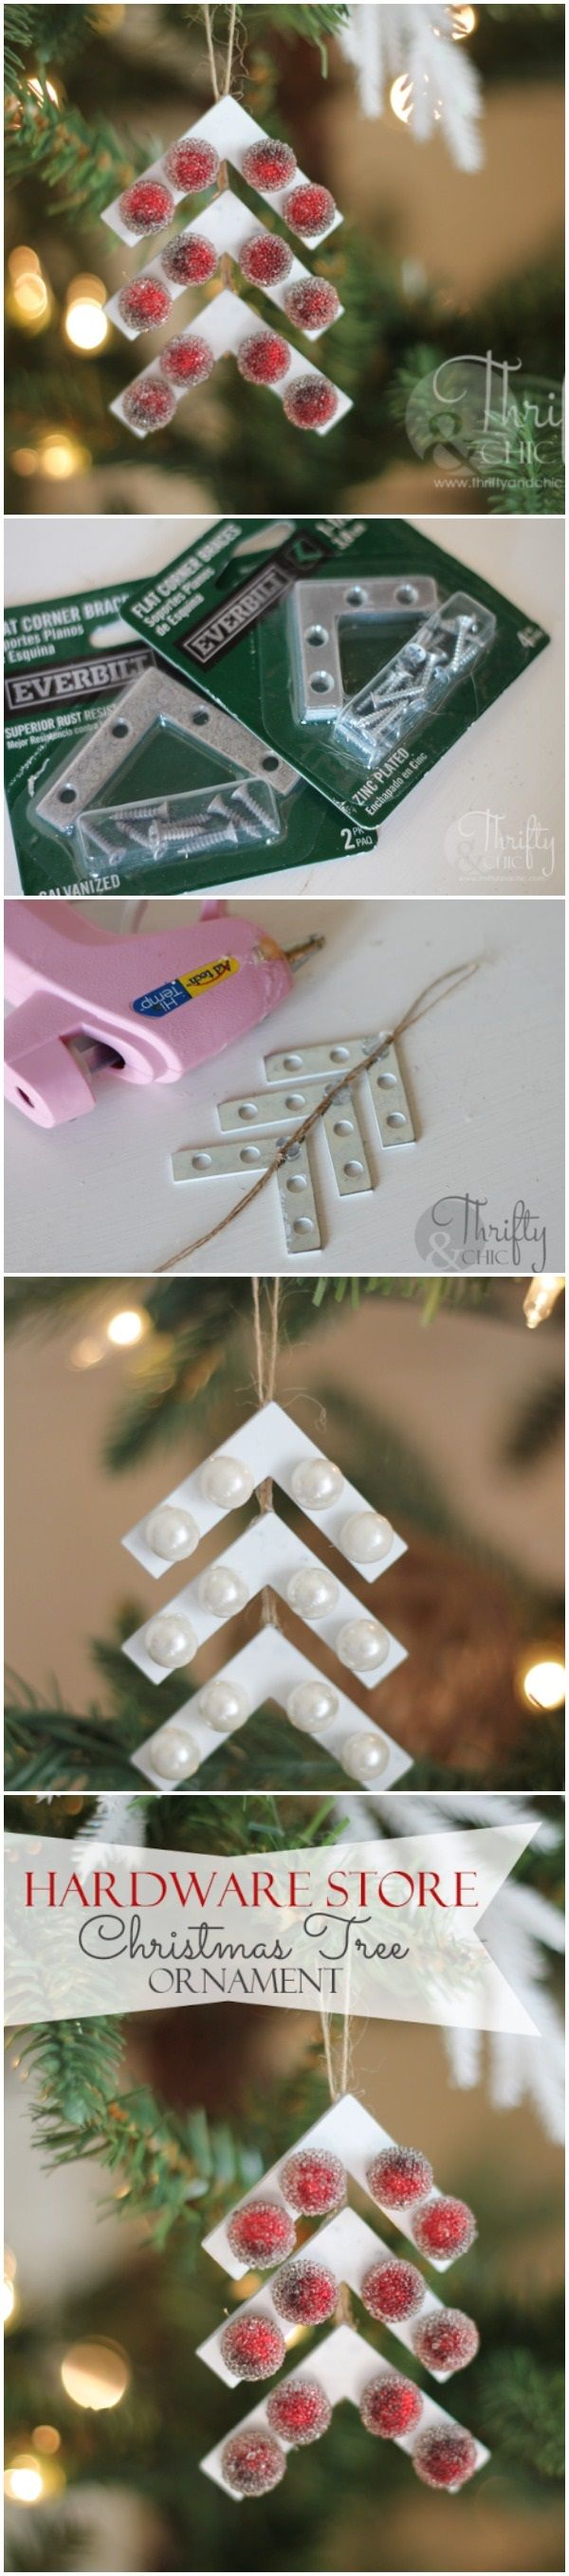 Hardware Store Christmas Tree Ornament | diyfunidea.com